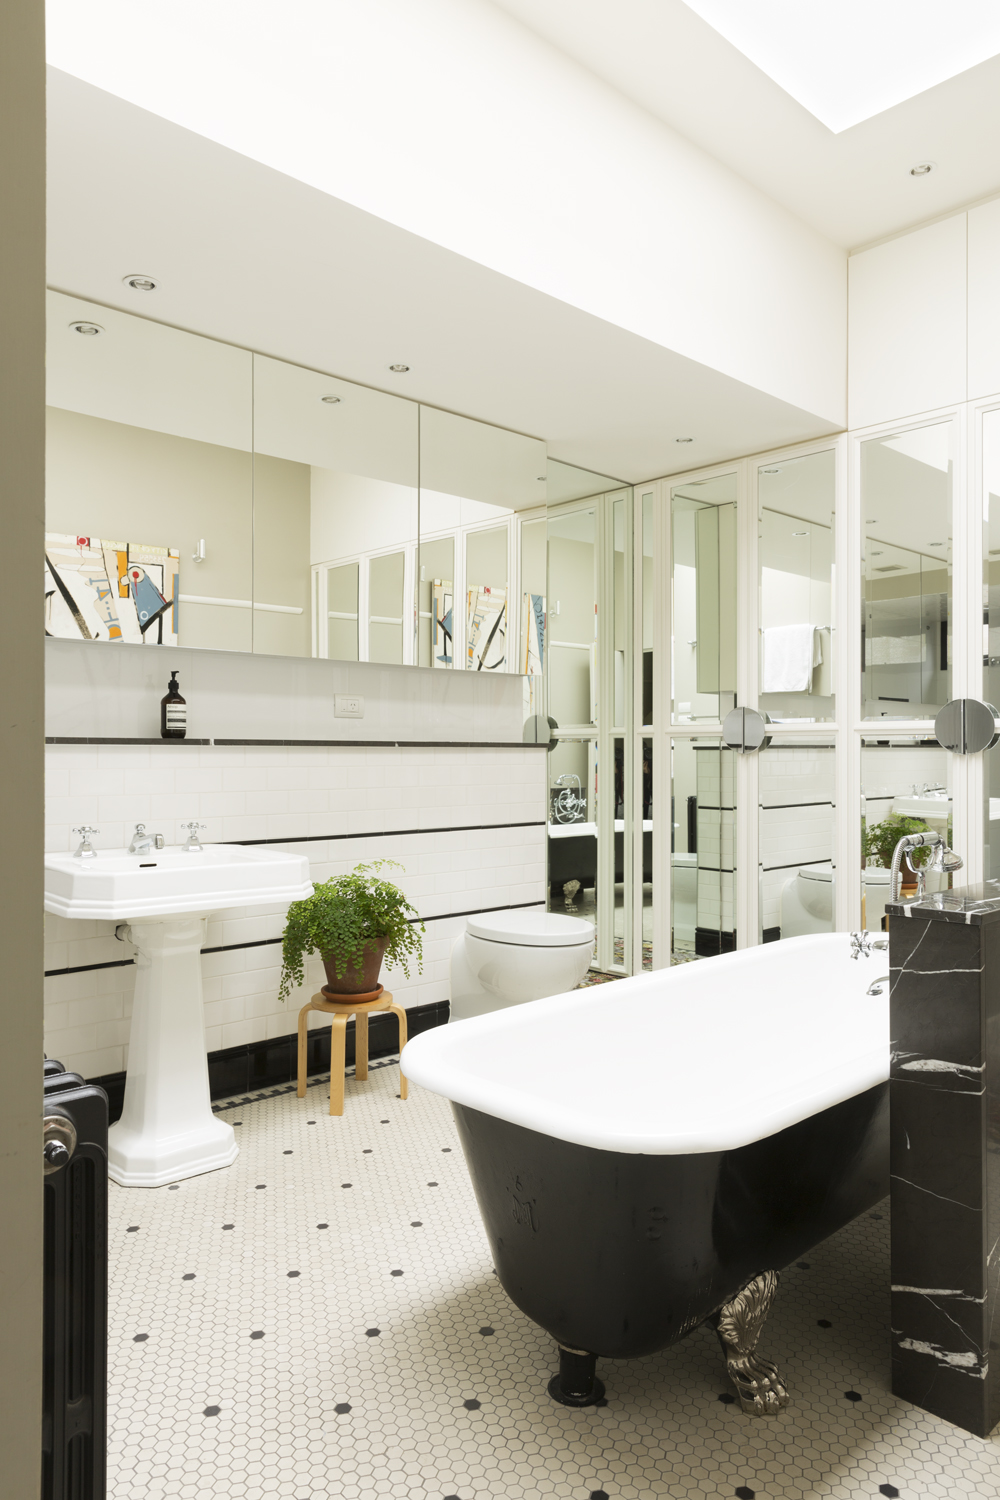 bathroom design Interior designer Melbourne Clifton Hill Interior decorator design ideas house design ensuite design tiles